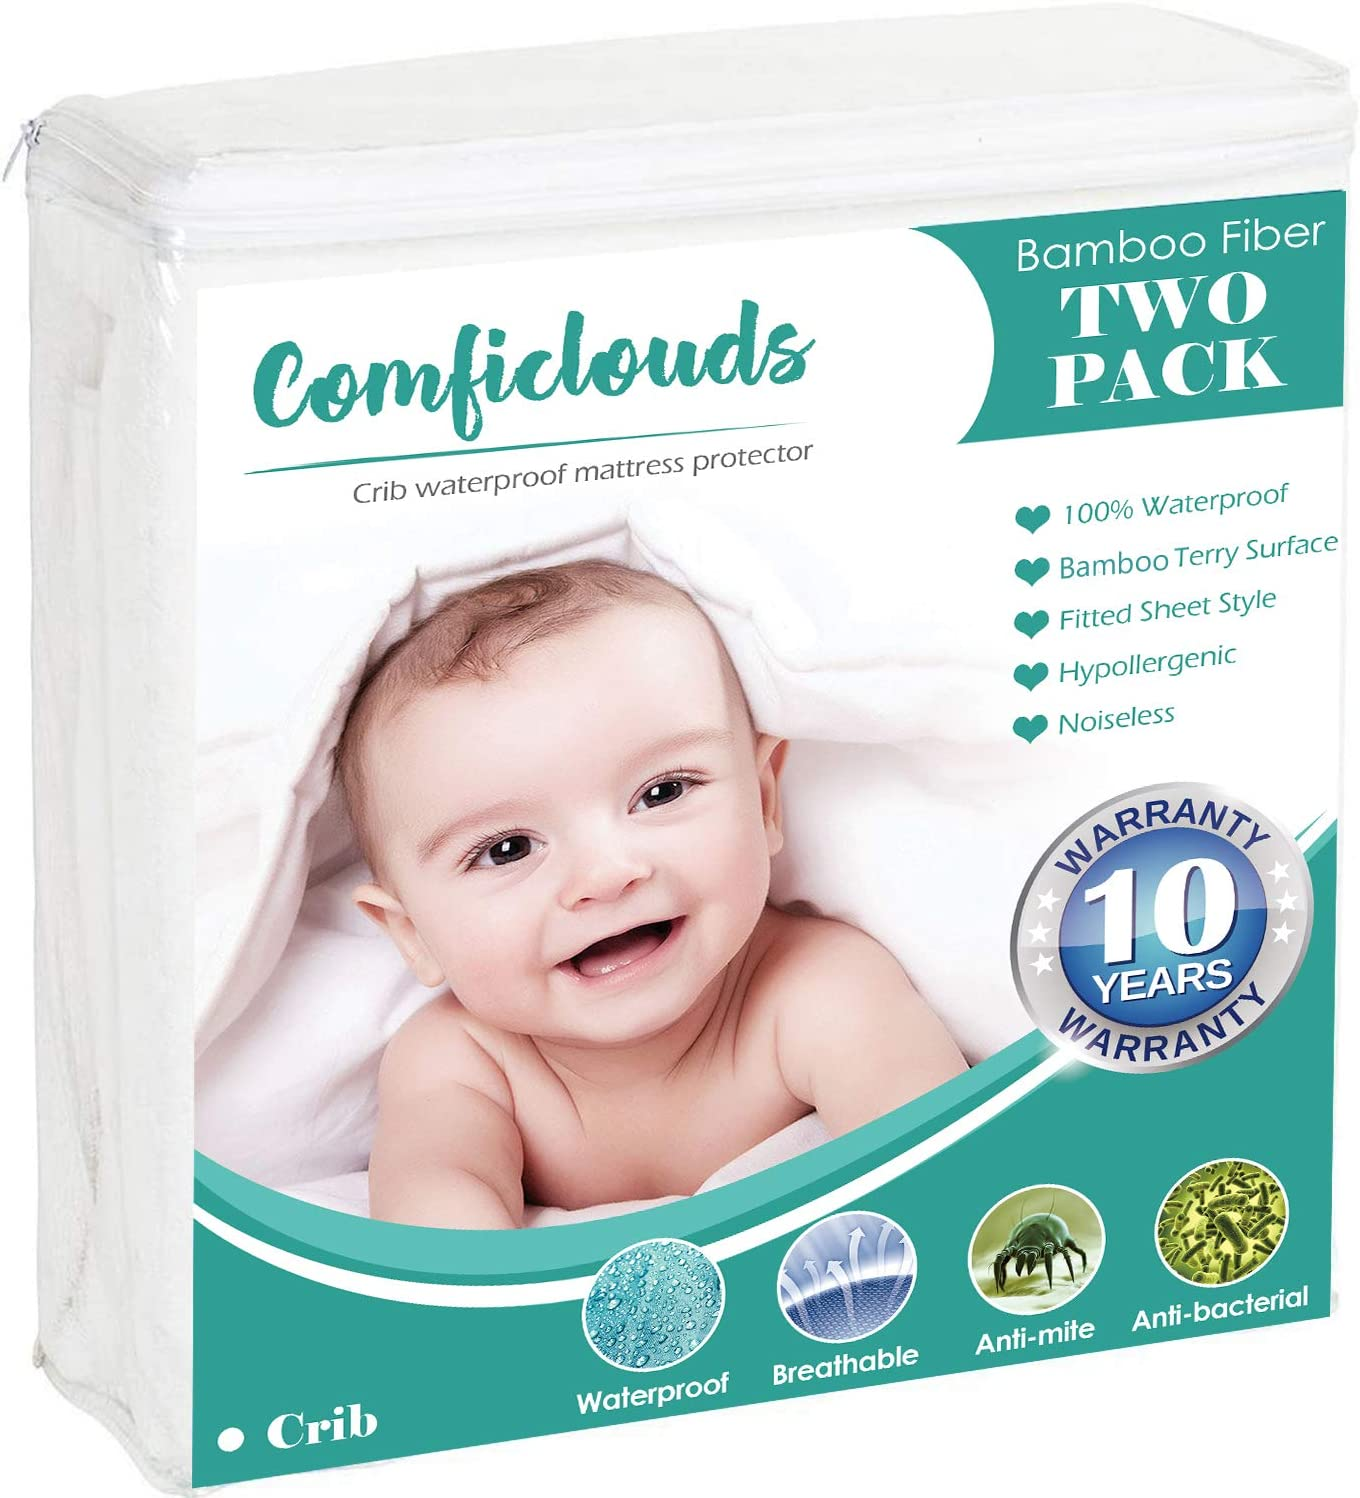 6-9 Deep 28 x 52 EASELAND 100/% Waterproof Crib Mattress Protector Organic Bamboo Fitted Sheet Style Ultra Soft 1 Pc//Pack Baby Mattress Pad Cover